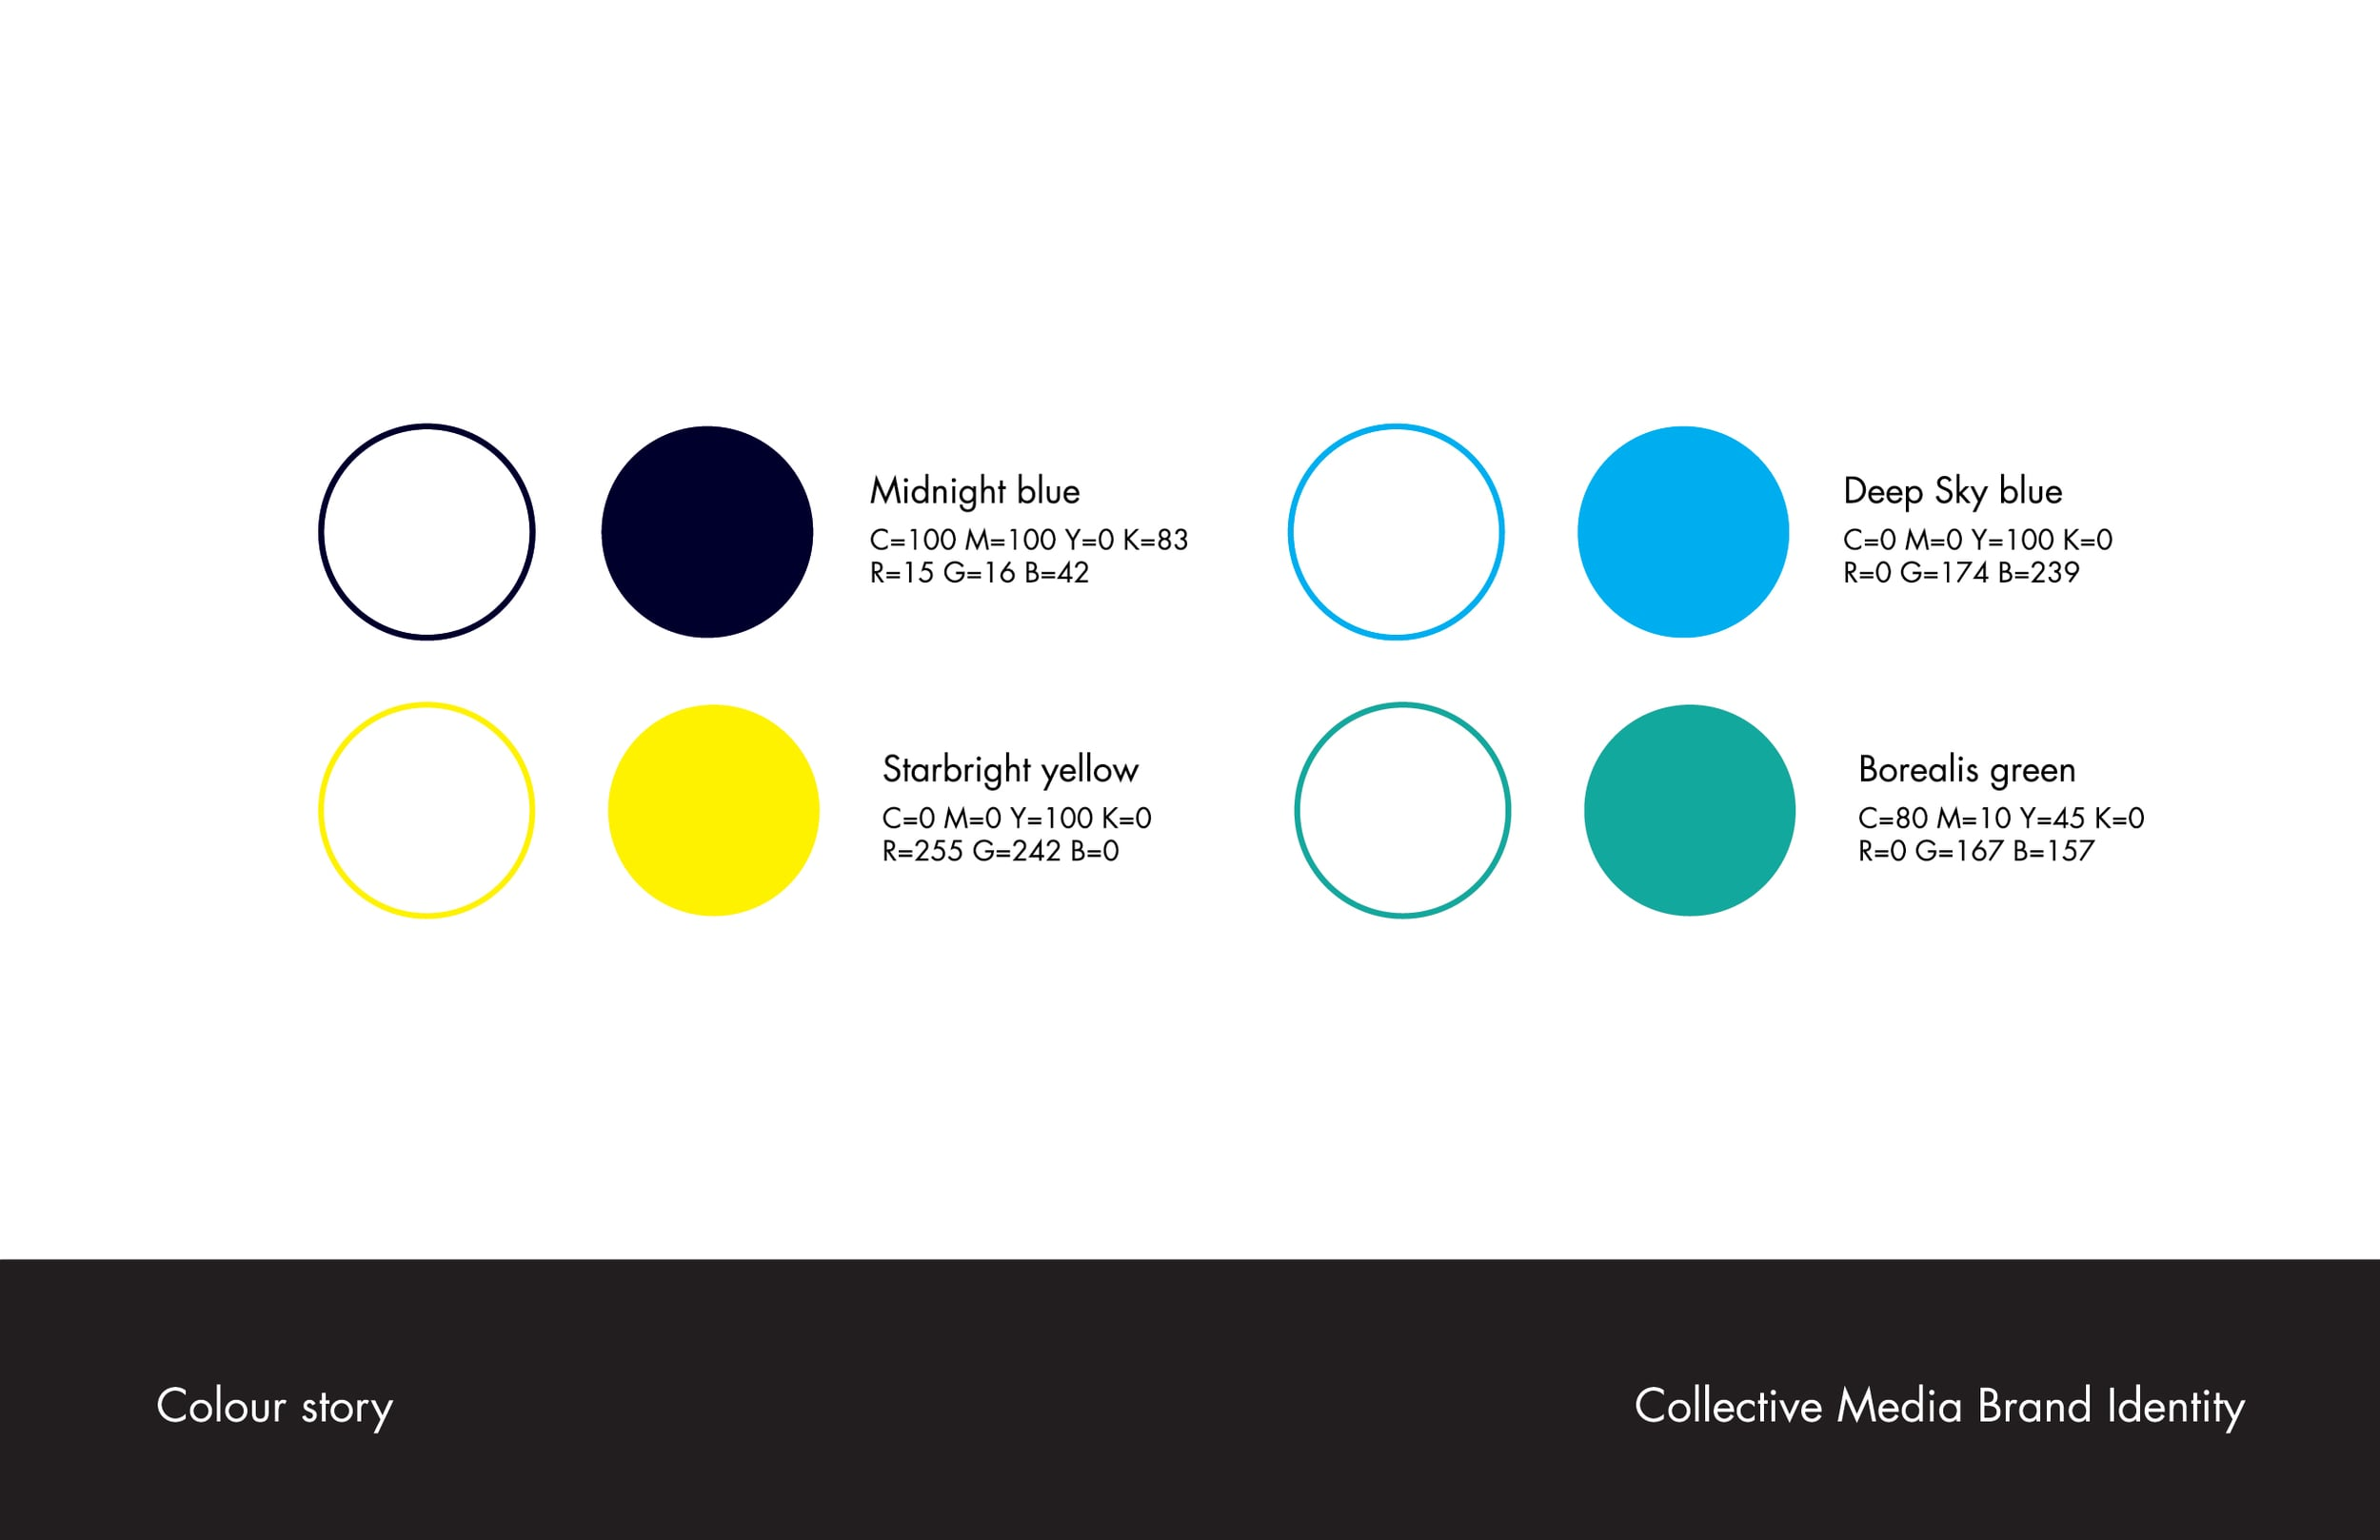 Collective-Media_Brand-Identity_Colours-Fonts-Elements_Guide_Colours.jpg